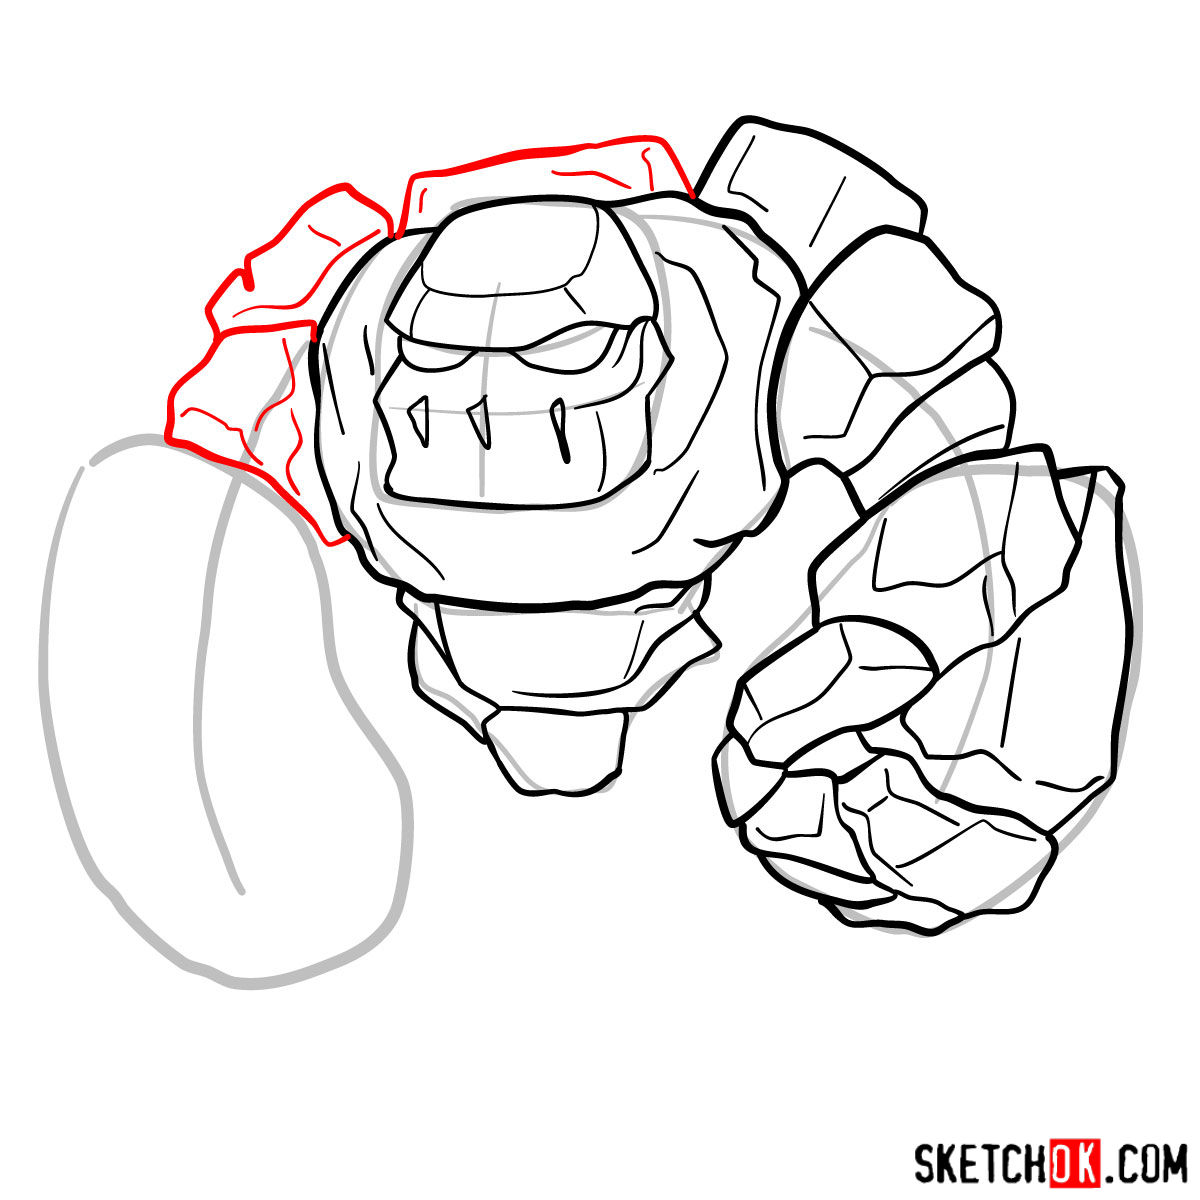 How to draw Golem (Golemite) from Clash of Clans - step 07